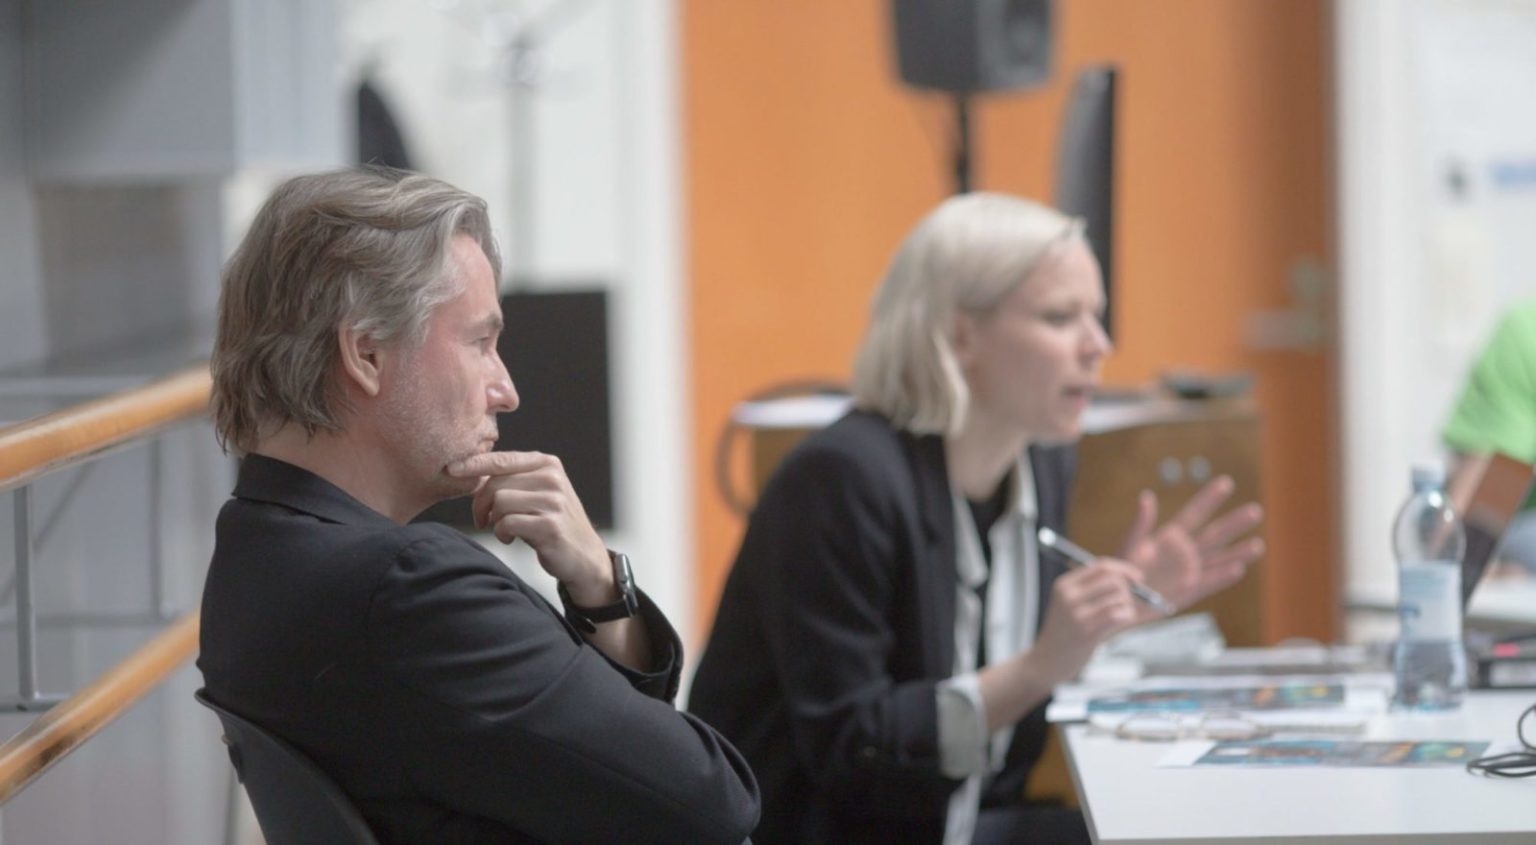 Man and woman in black suits sitting in front of a table